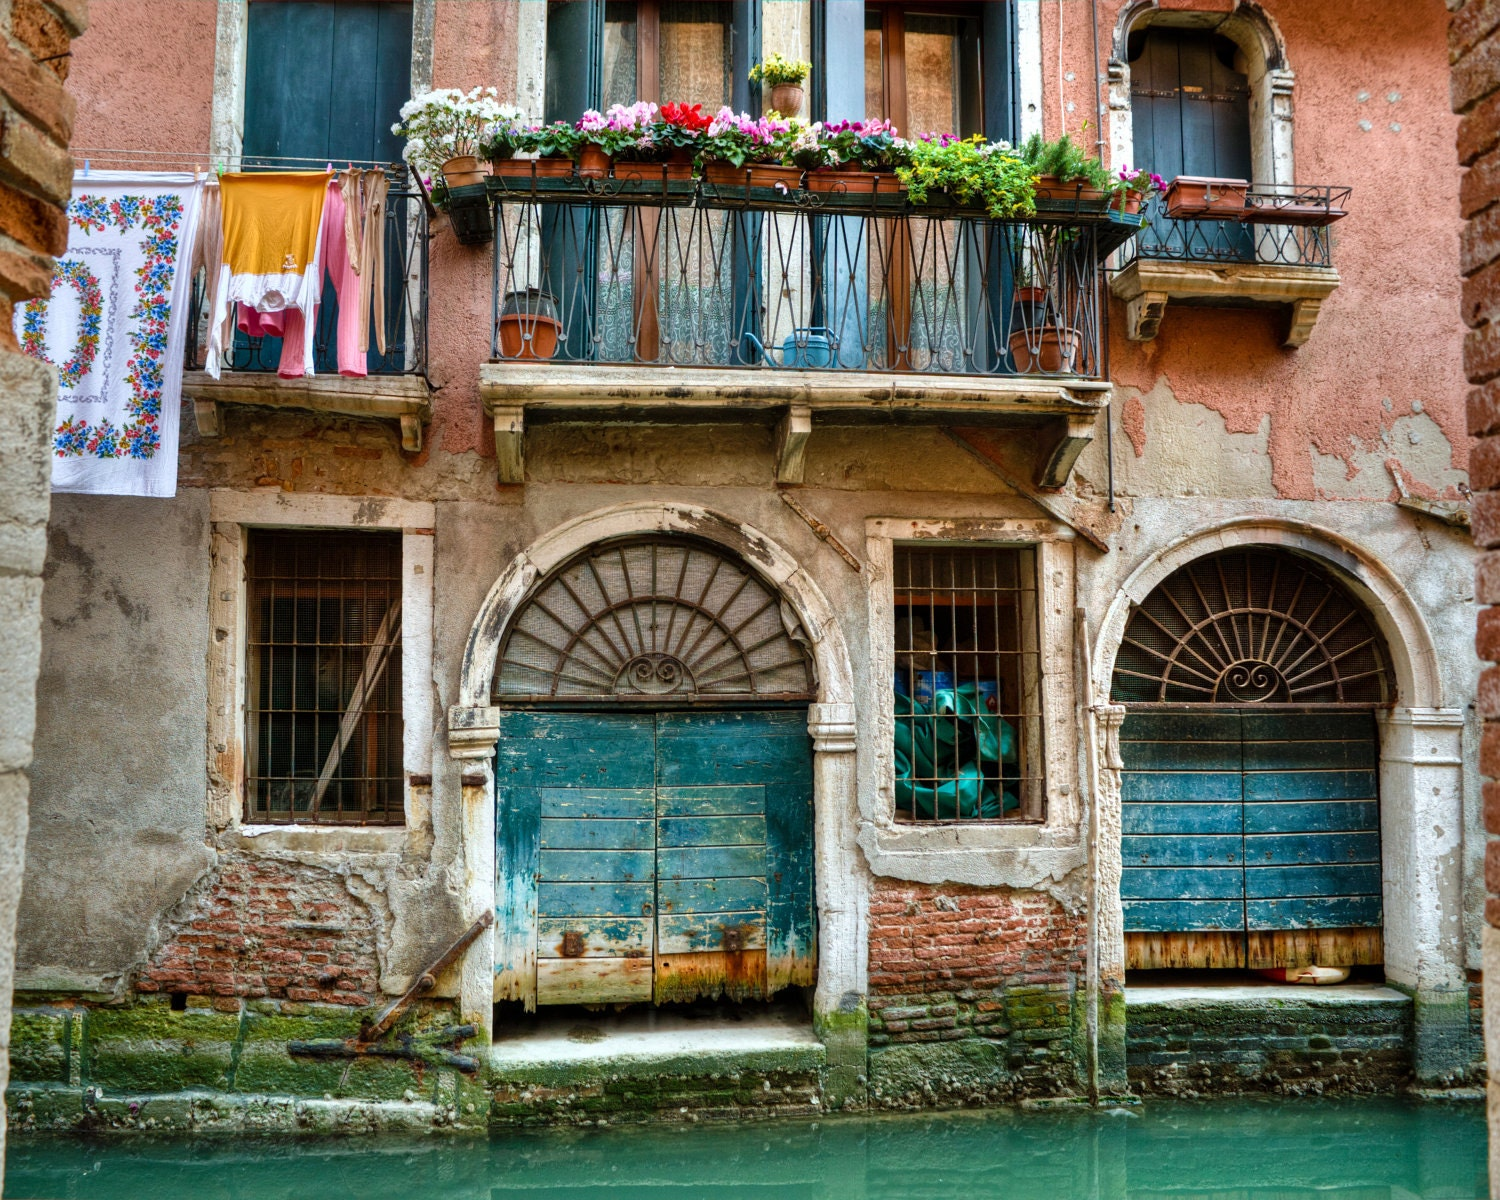 Venice photograph italy photo hanging laundry balcony canal for Balcony in italian